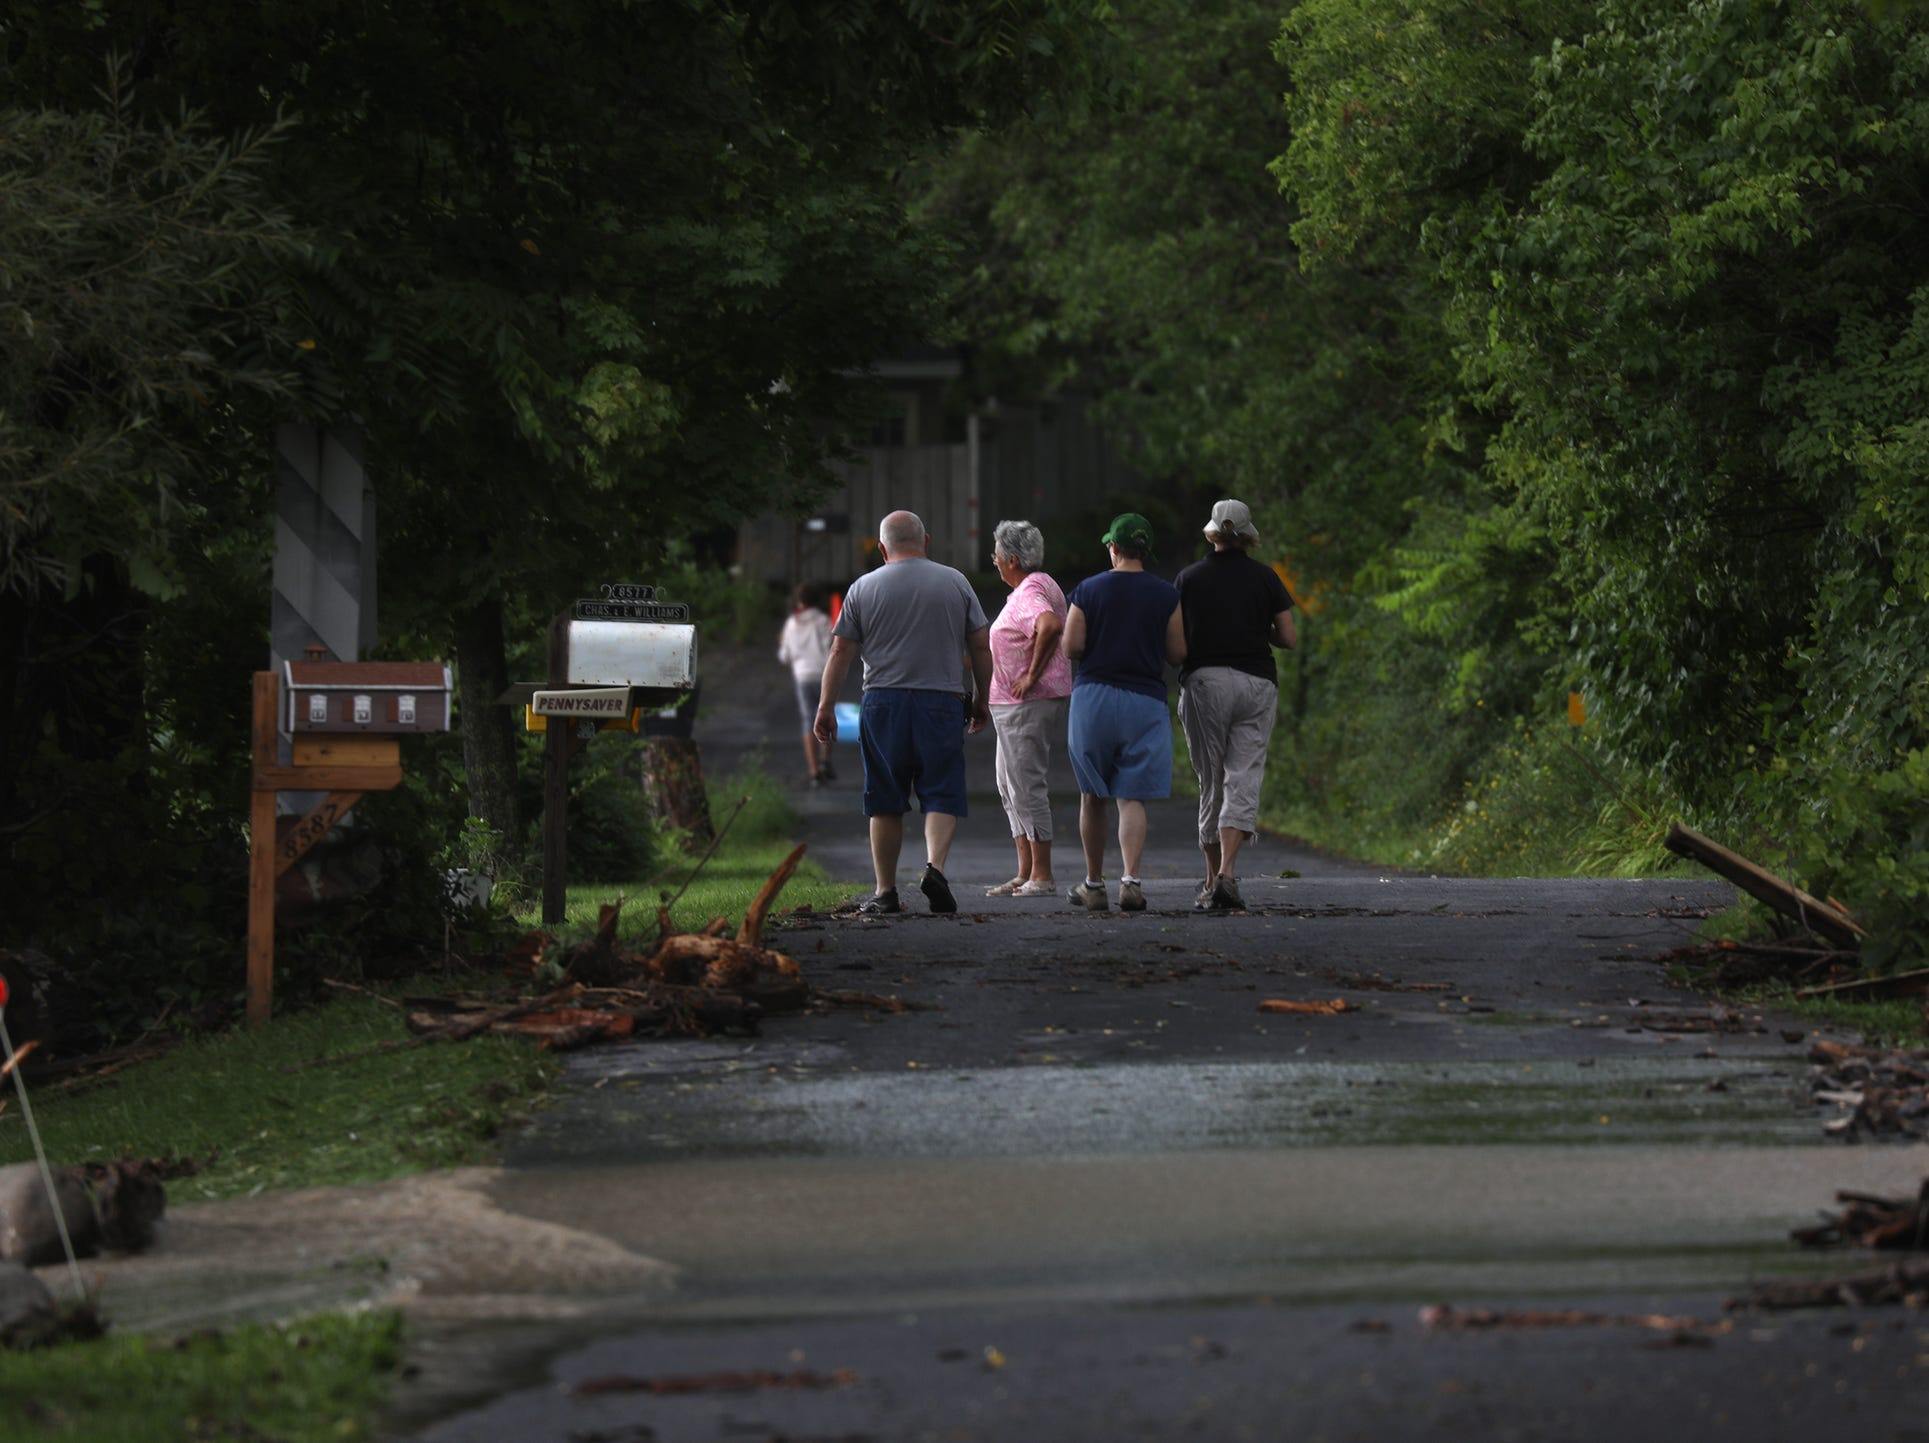 Many residents and vacationers stopped and talked and assessed damage after heavy rain caused flooding and washing away at Lodi Point, New York on Tuesday, August 14, 2018.